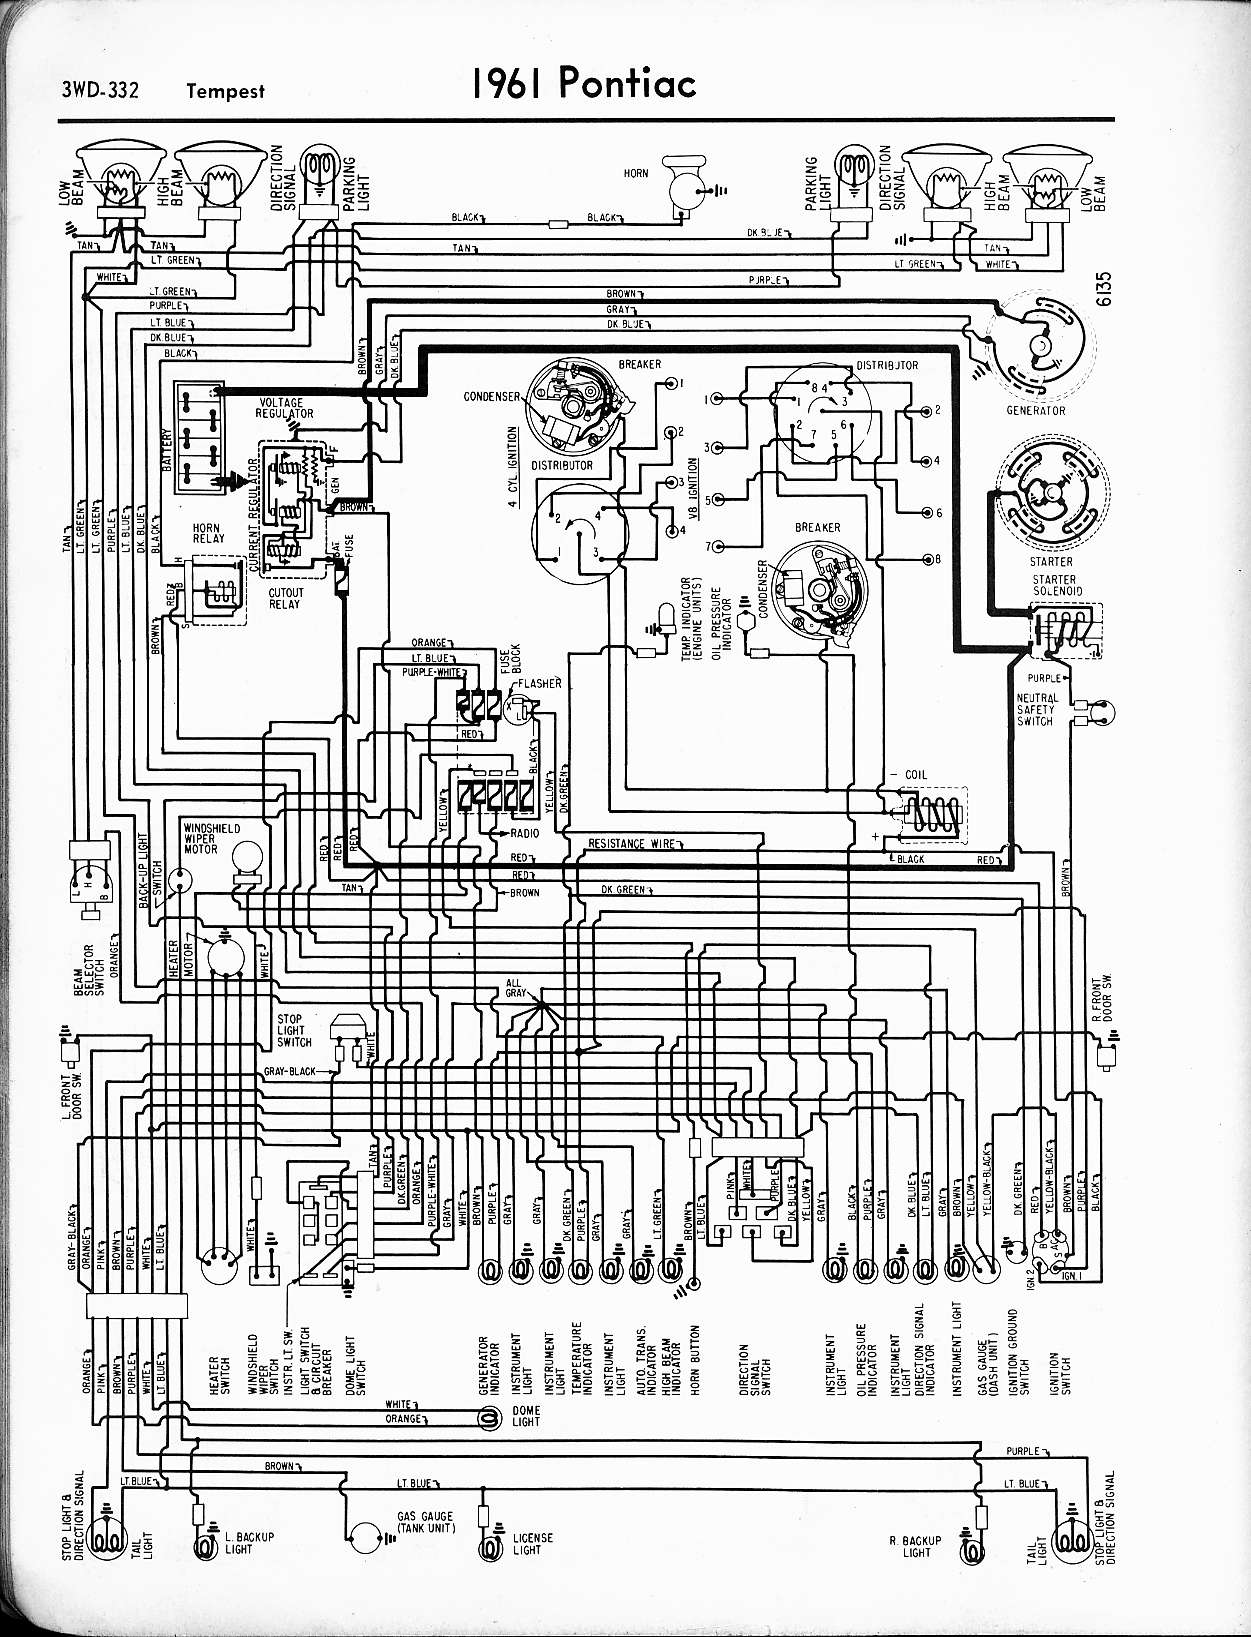 1968 Pontiac Catalina Wiring Diagram Reveolution Of 1960 Impala